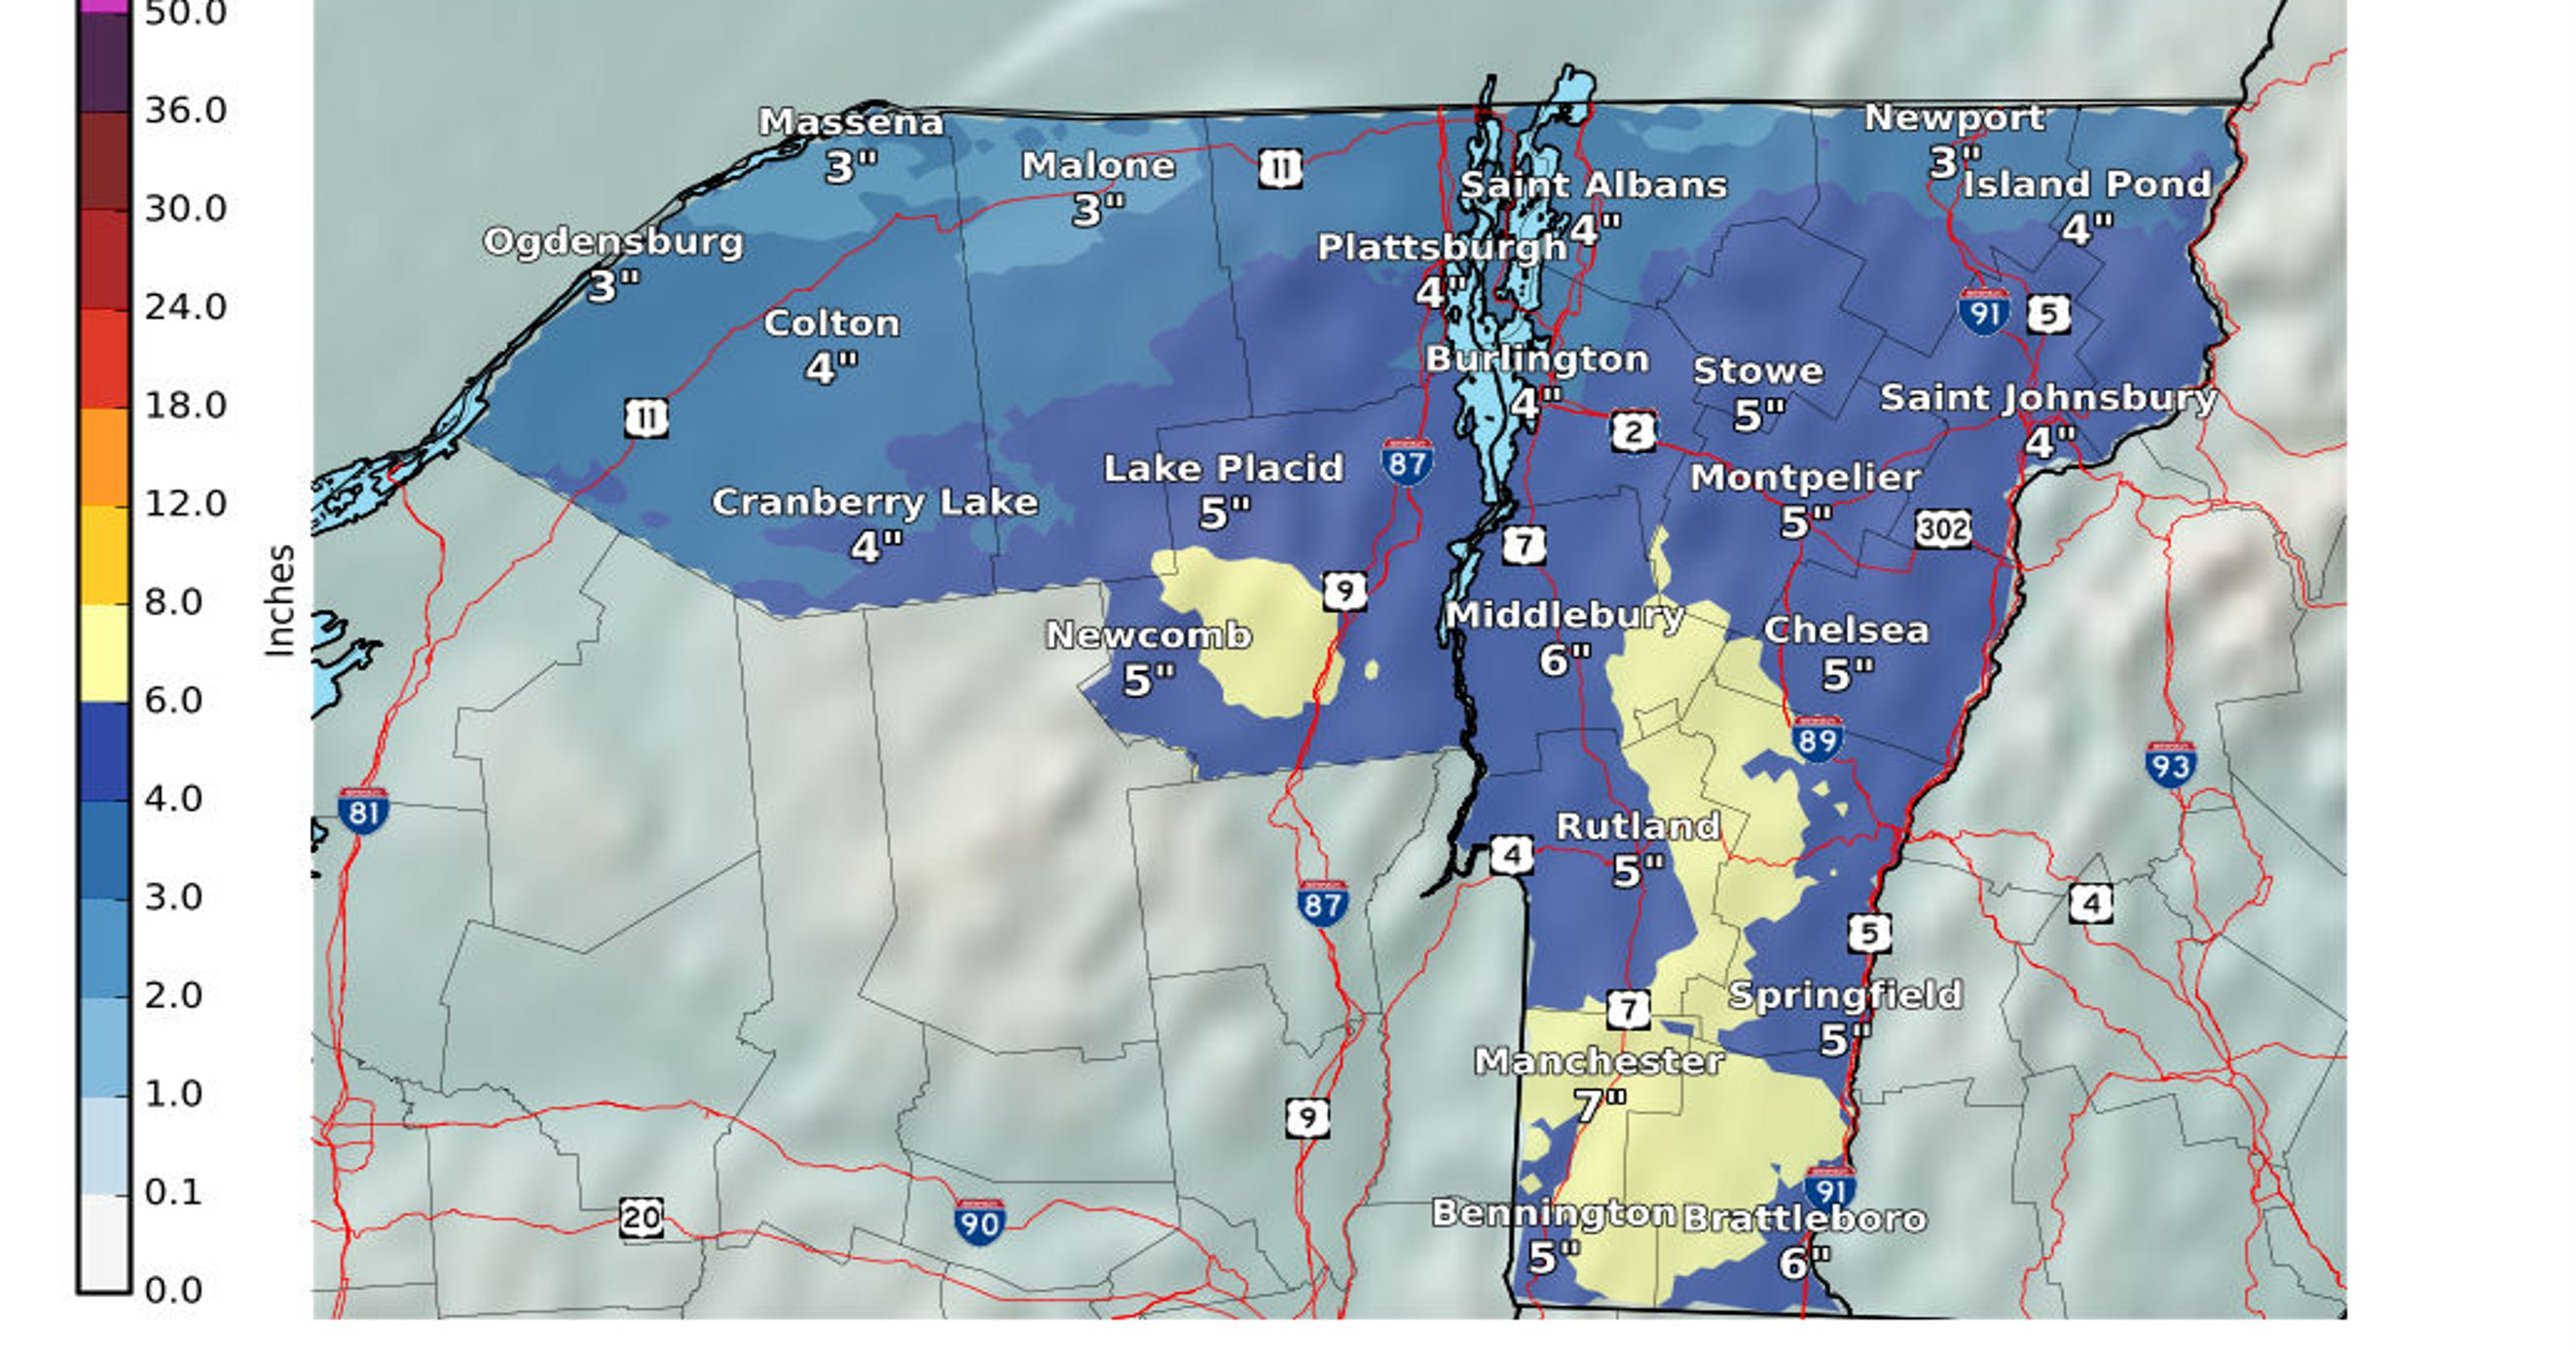 Northern Vermont could see 3 to 6 inches of snow Friday